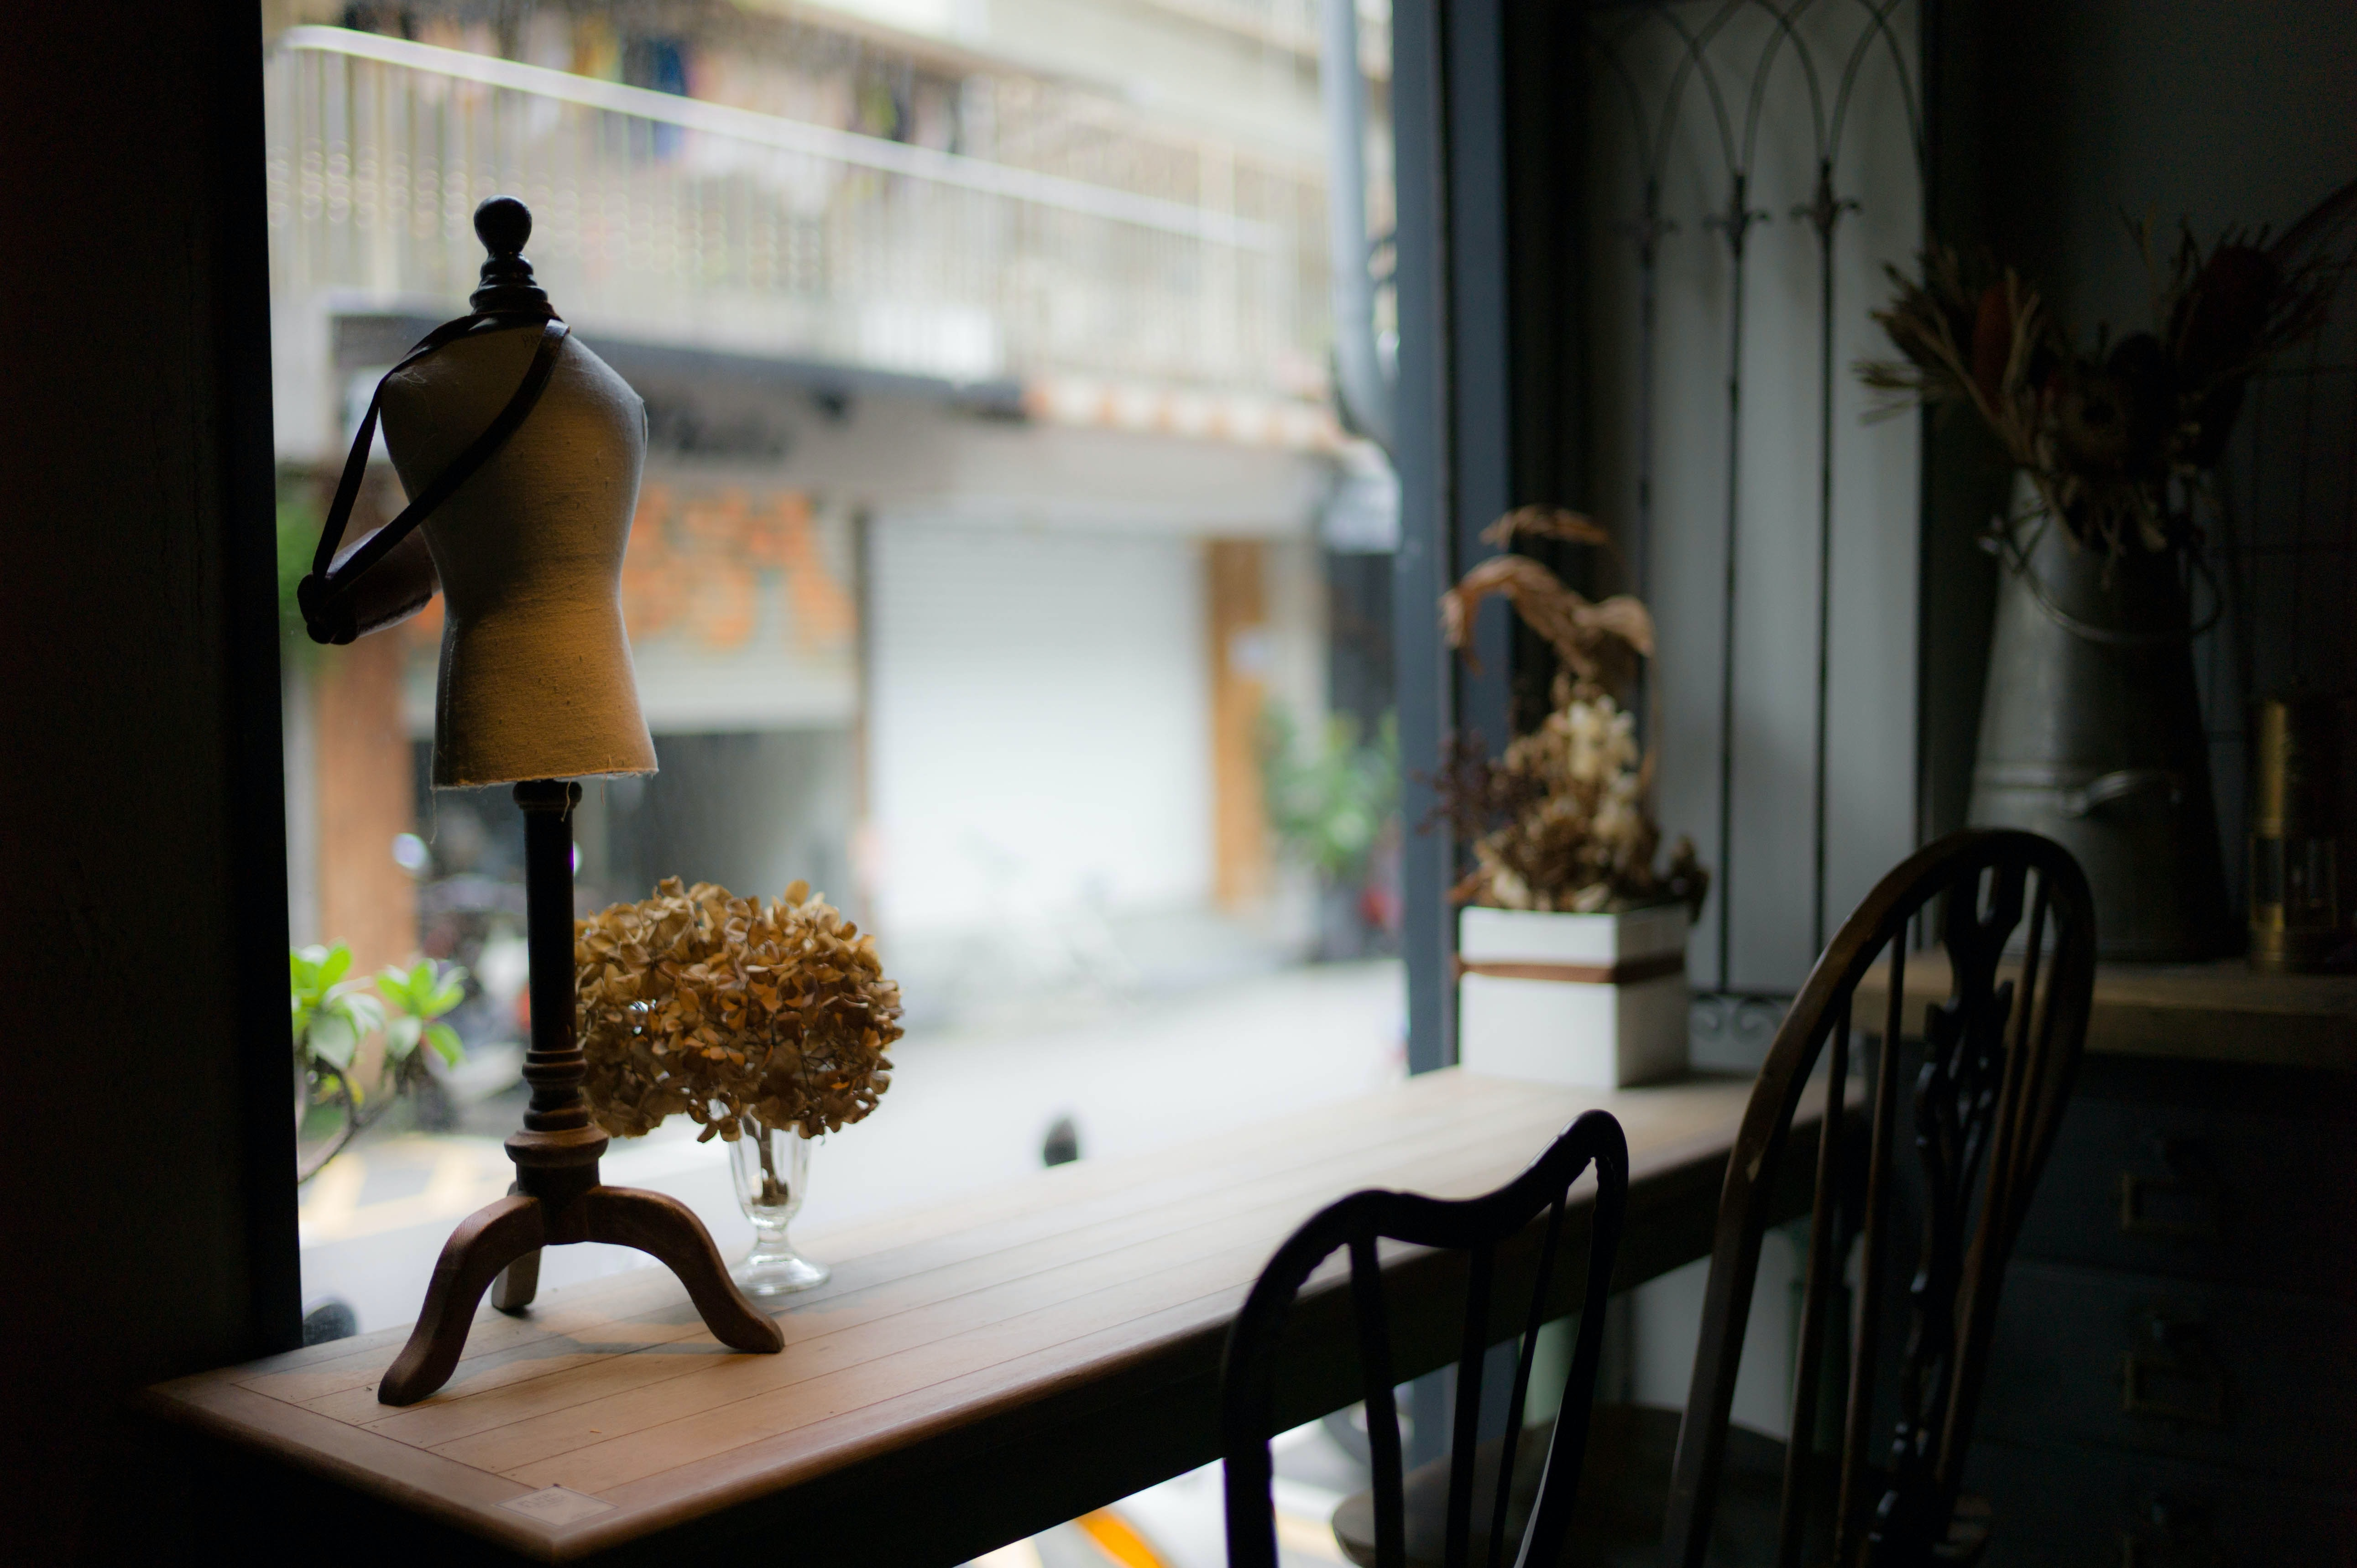 A narrow table with dried flowers on it near a store window